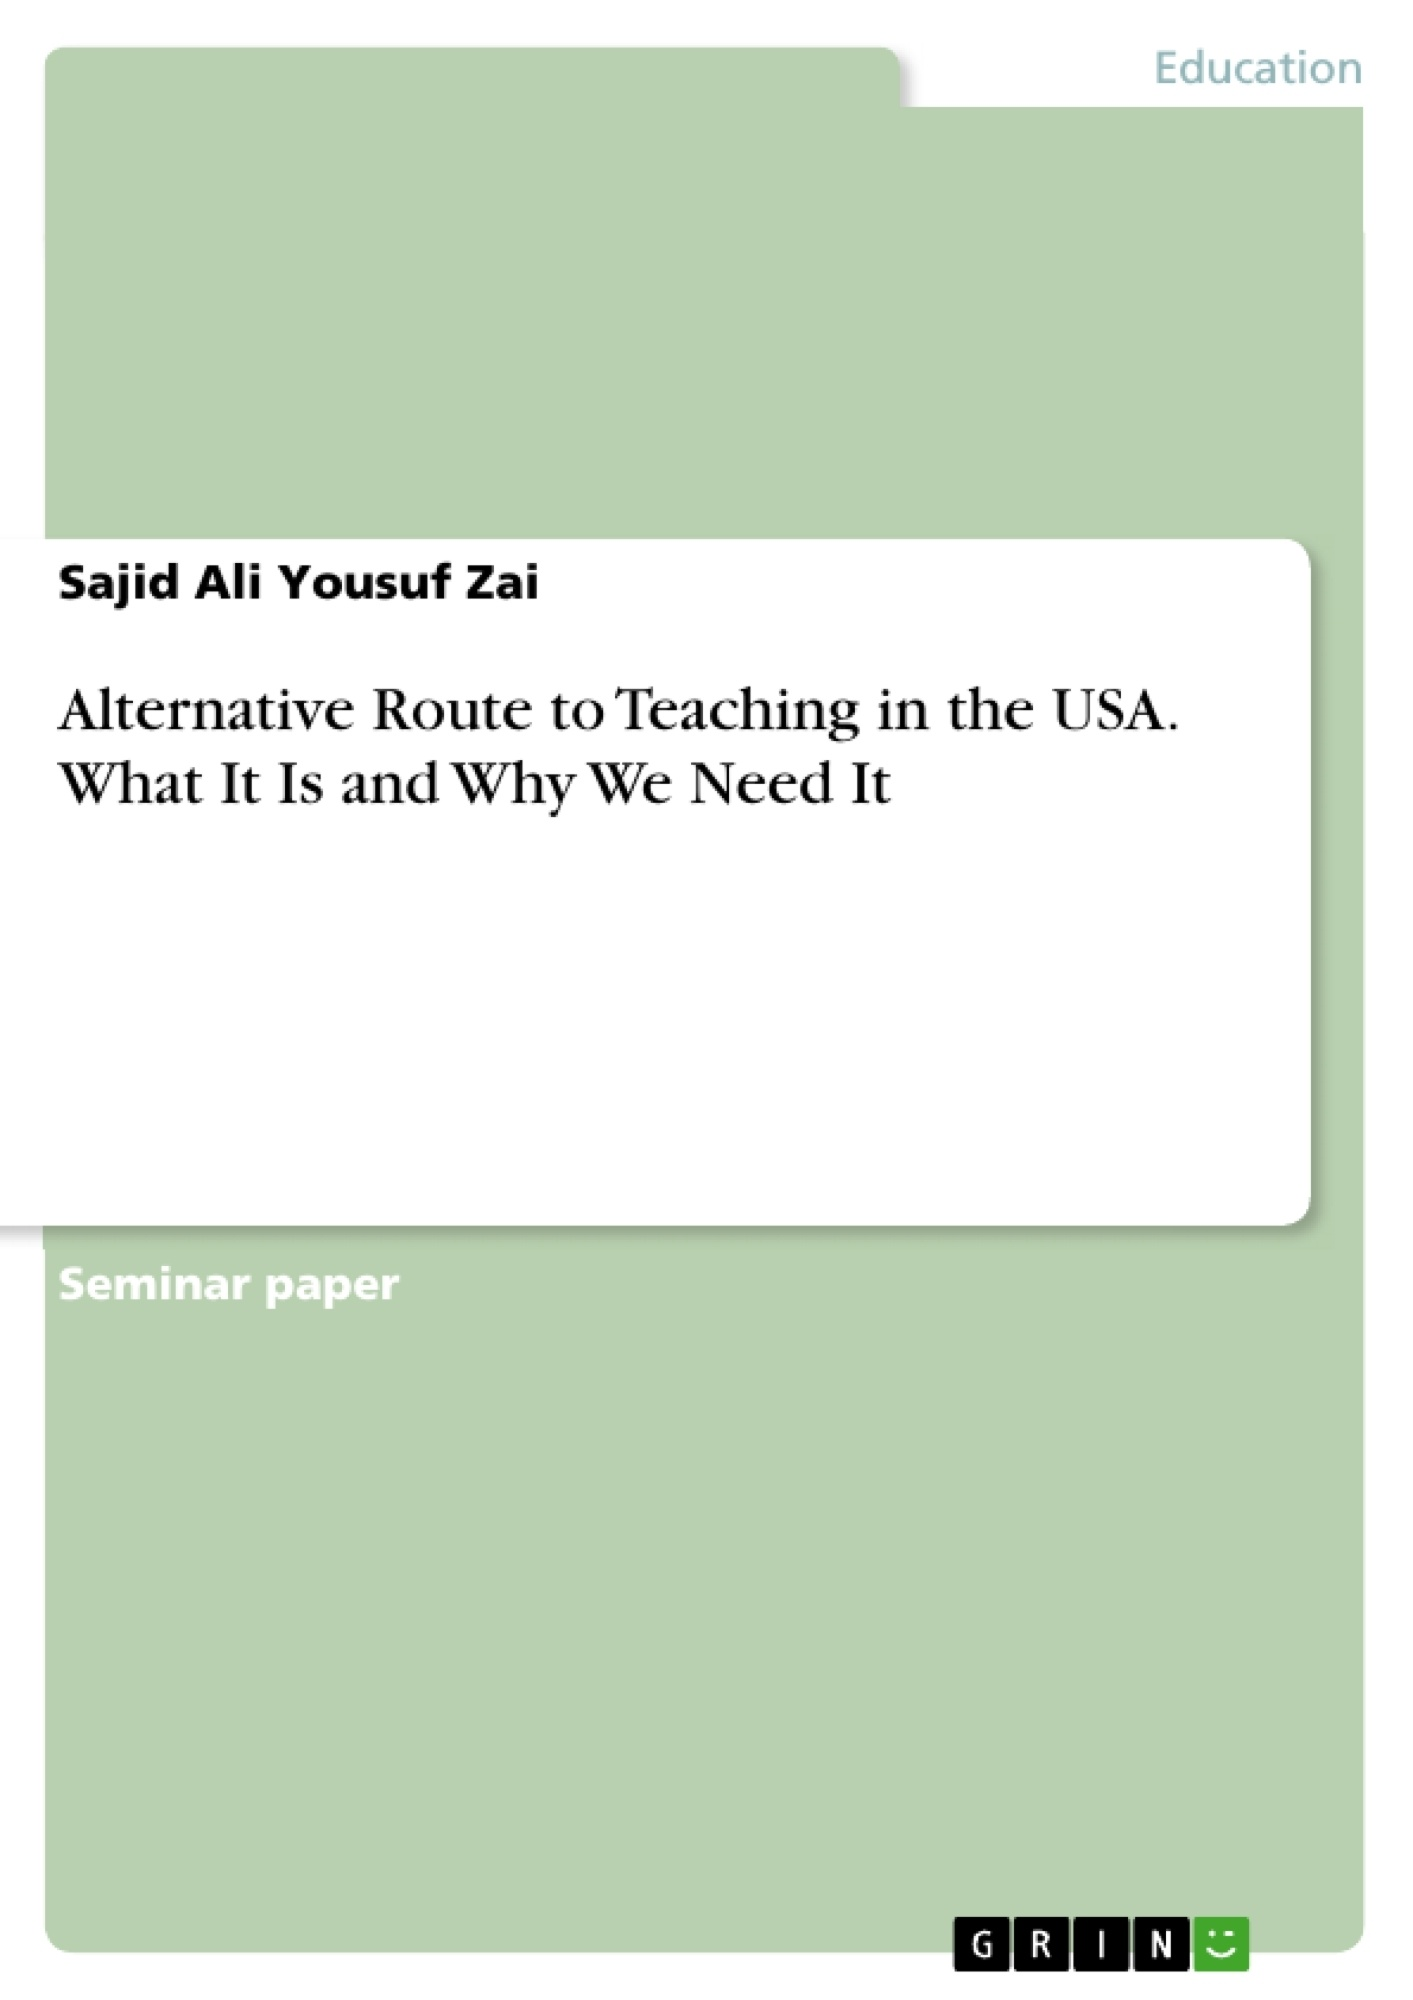 Title: Alternative Route to Teaching in the USA. What It Is and Why We Need It